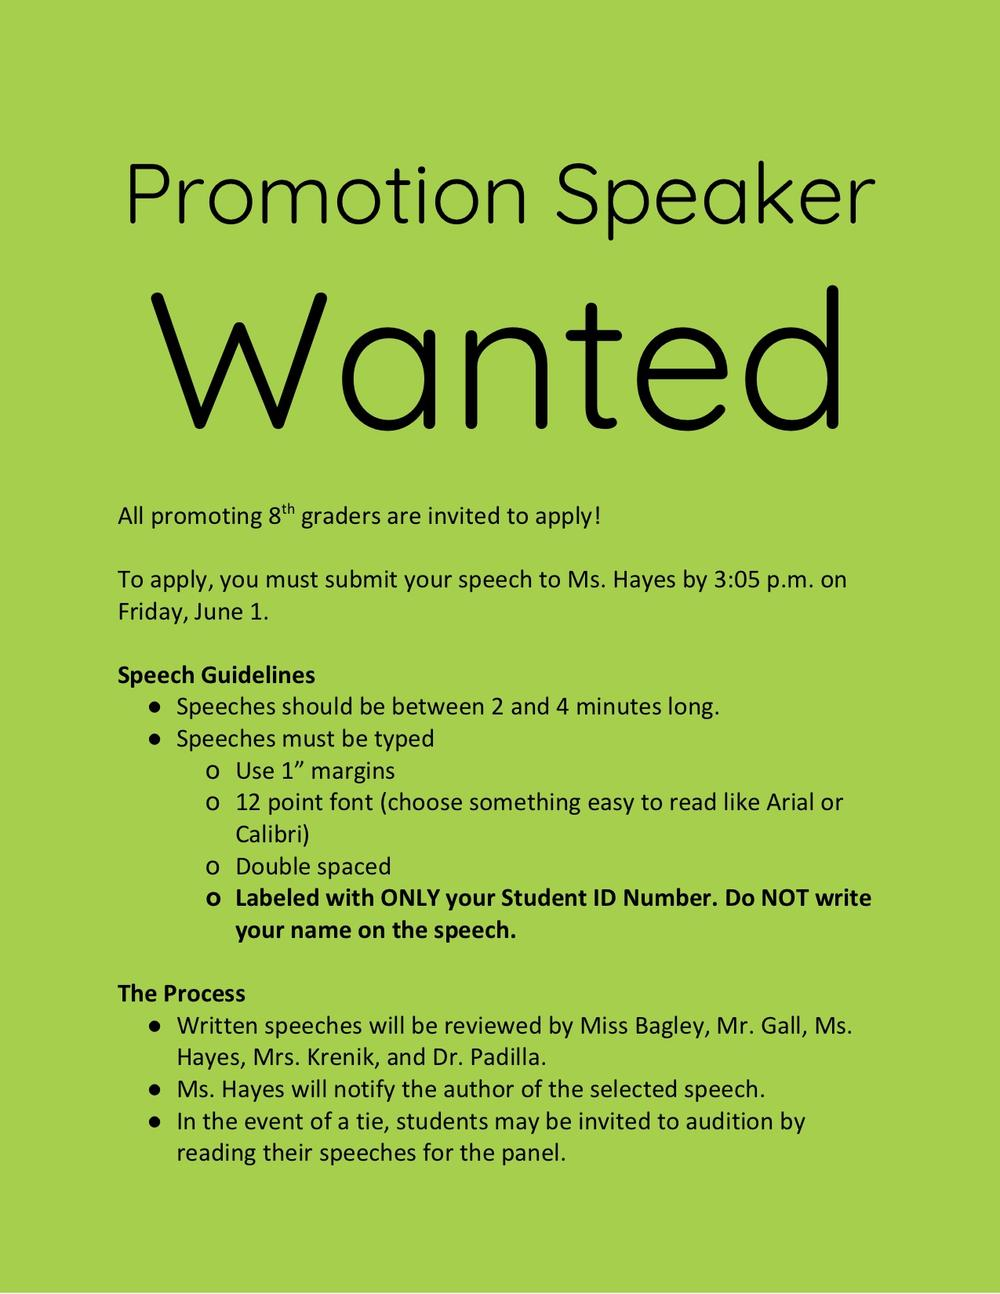 Promotion speech guidelines